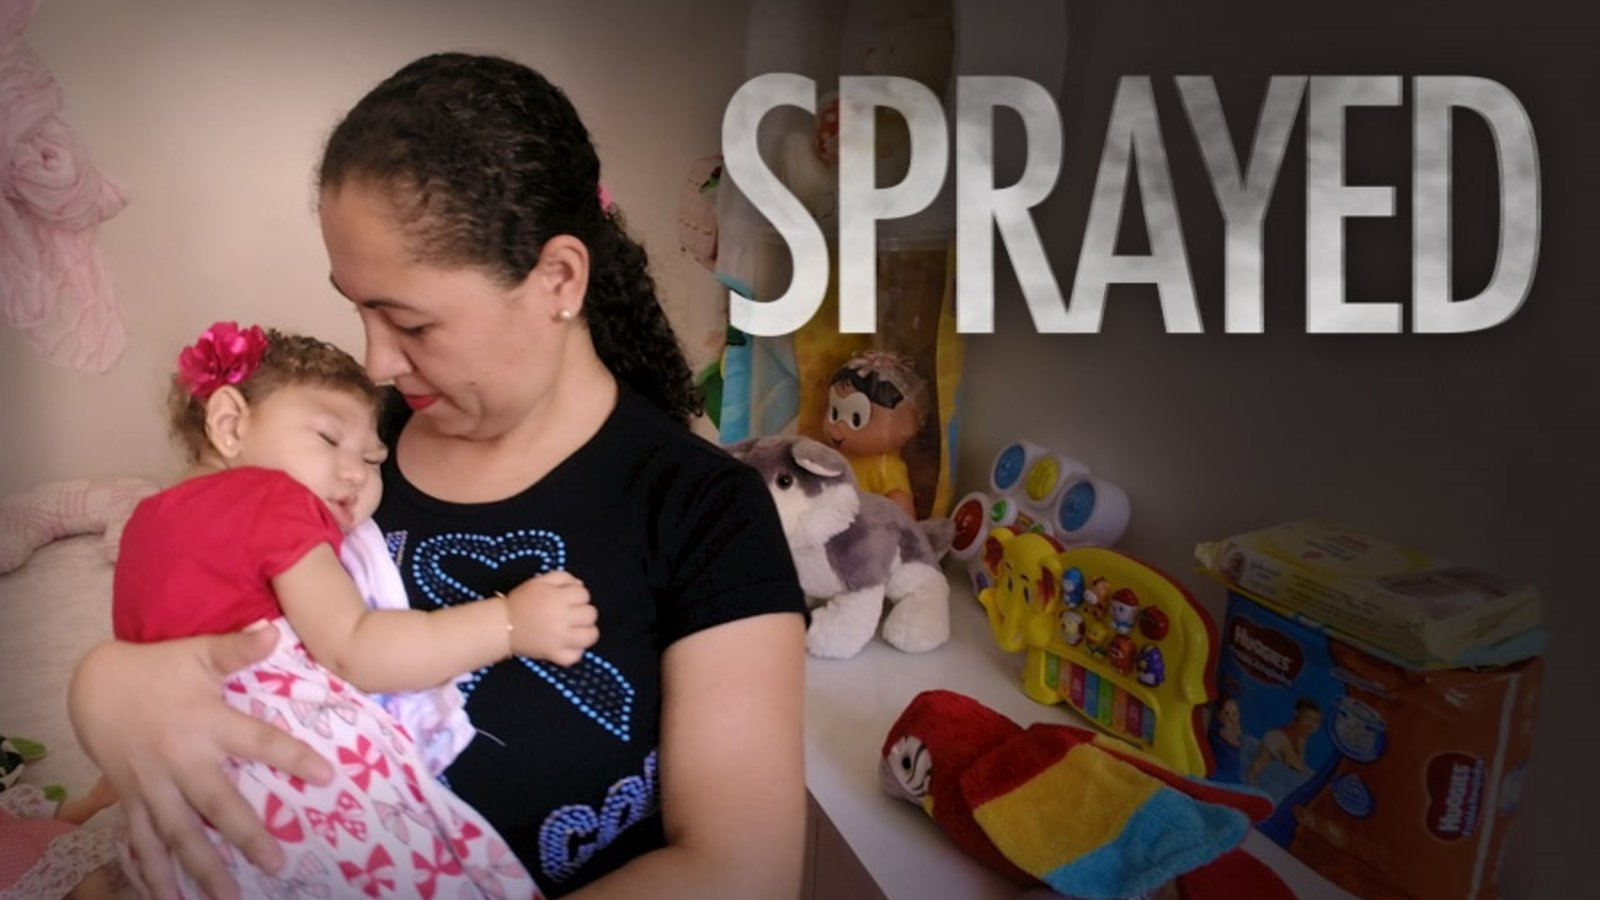 Sprayed - Investigating the Zika Virus and the Link to Pesticides